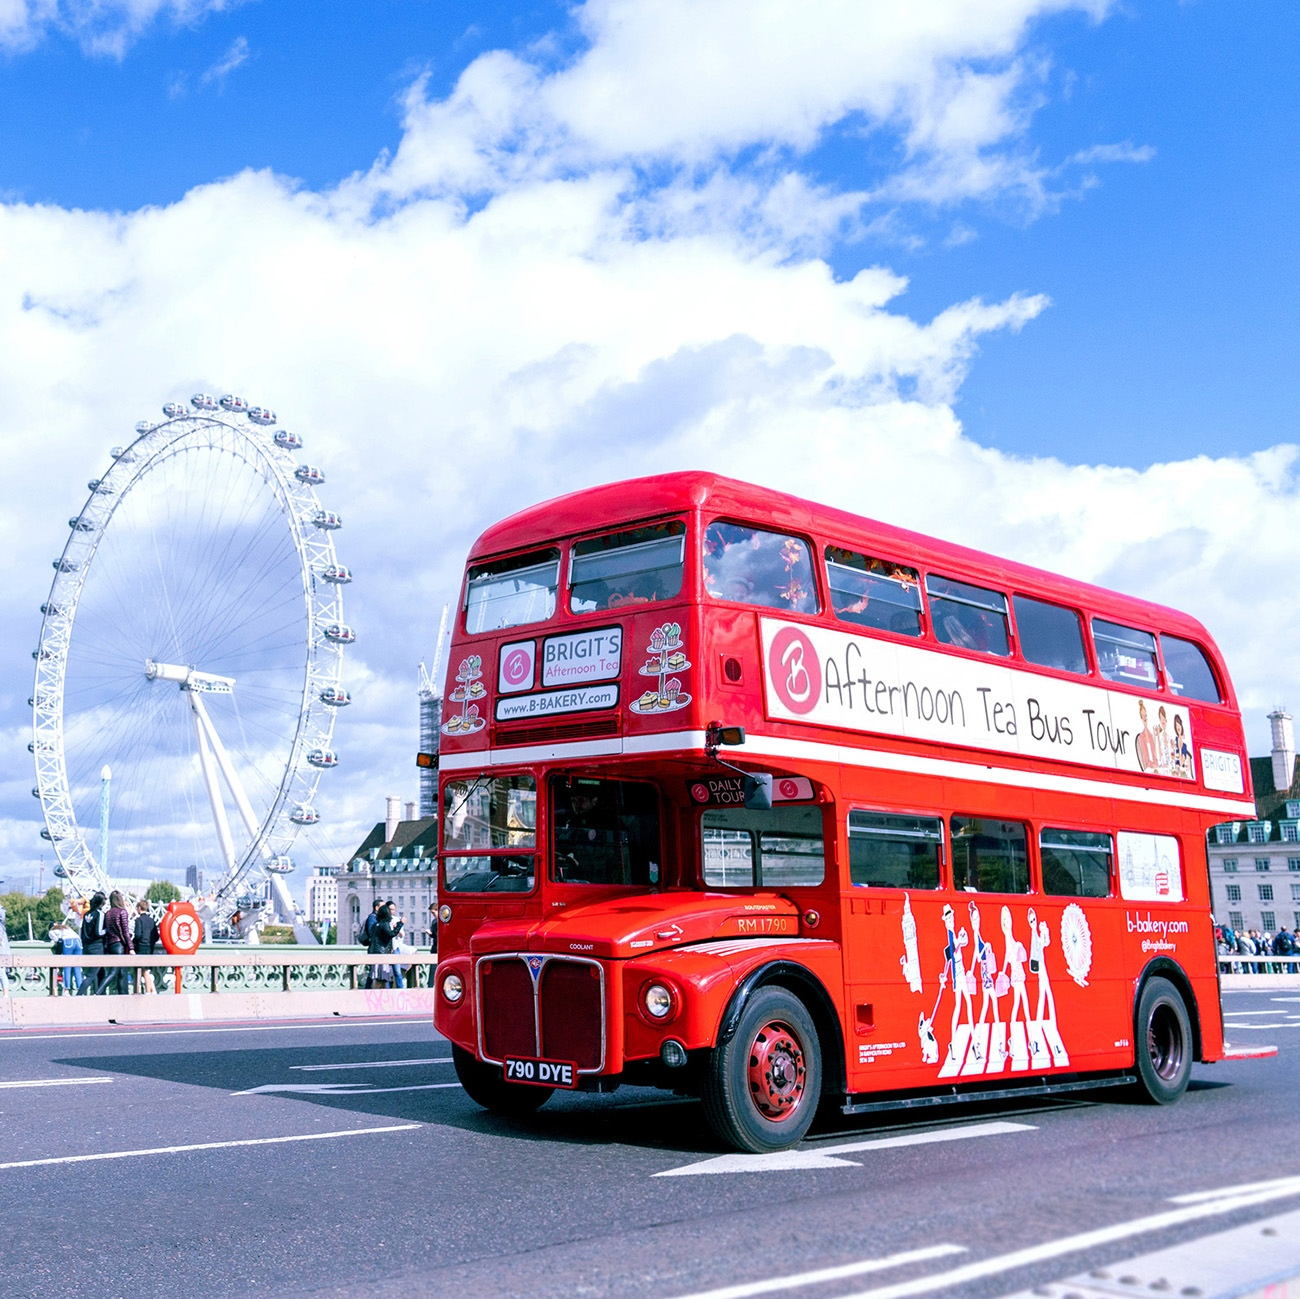 things to do in London with kids: the London Eye